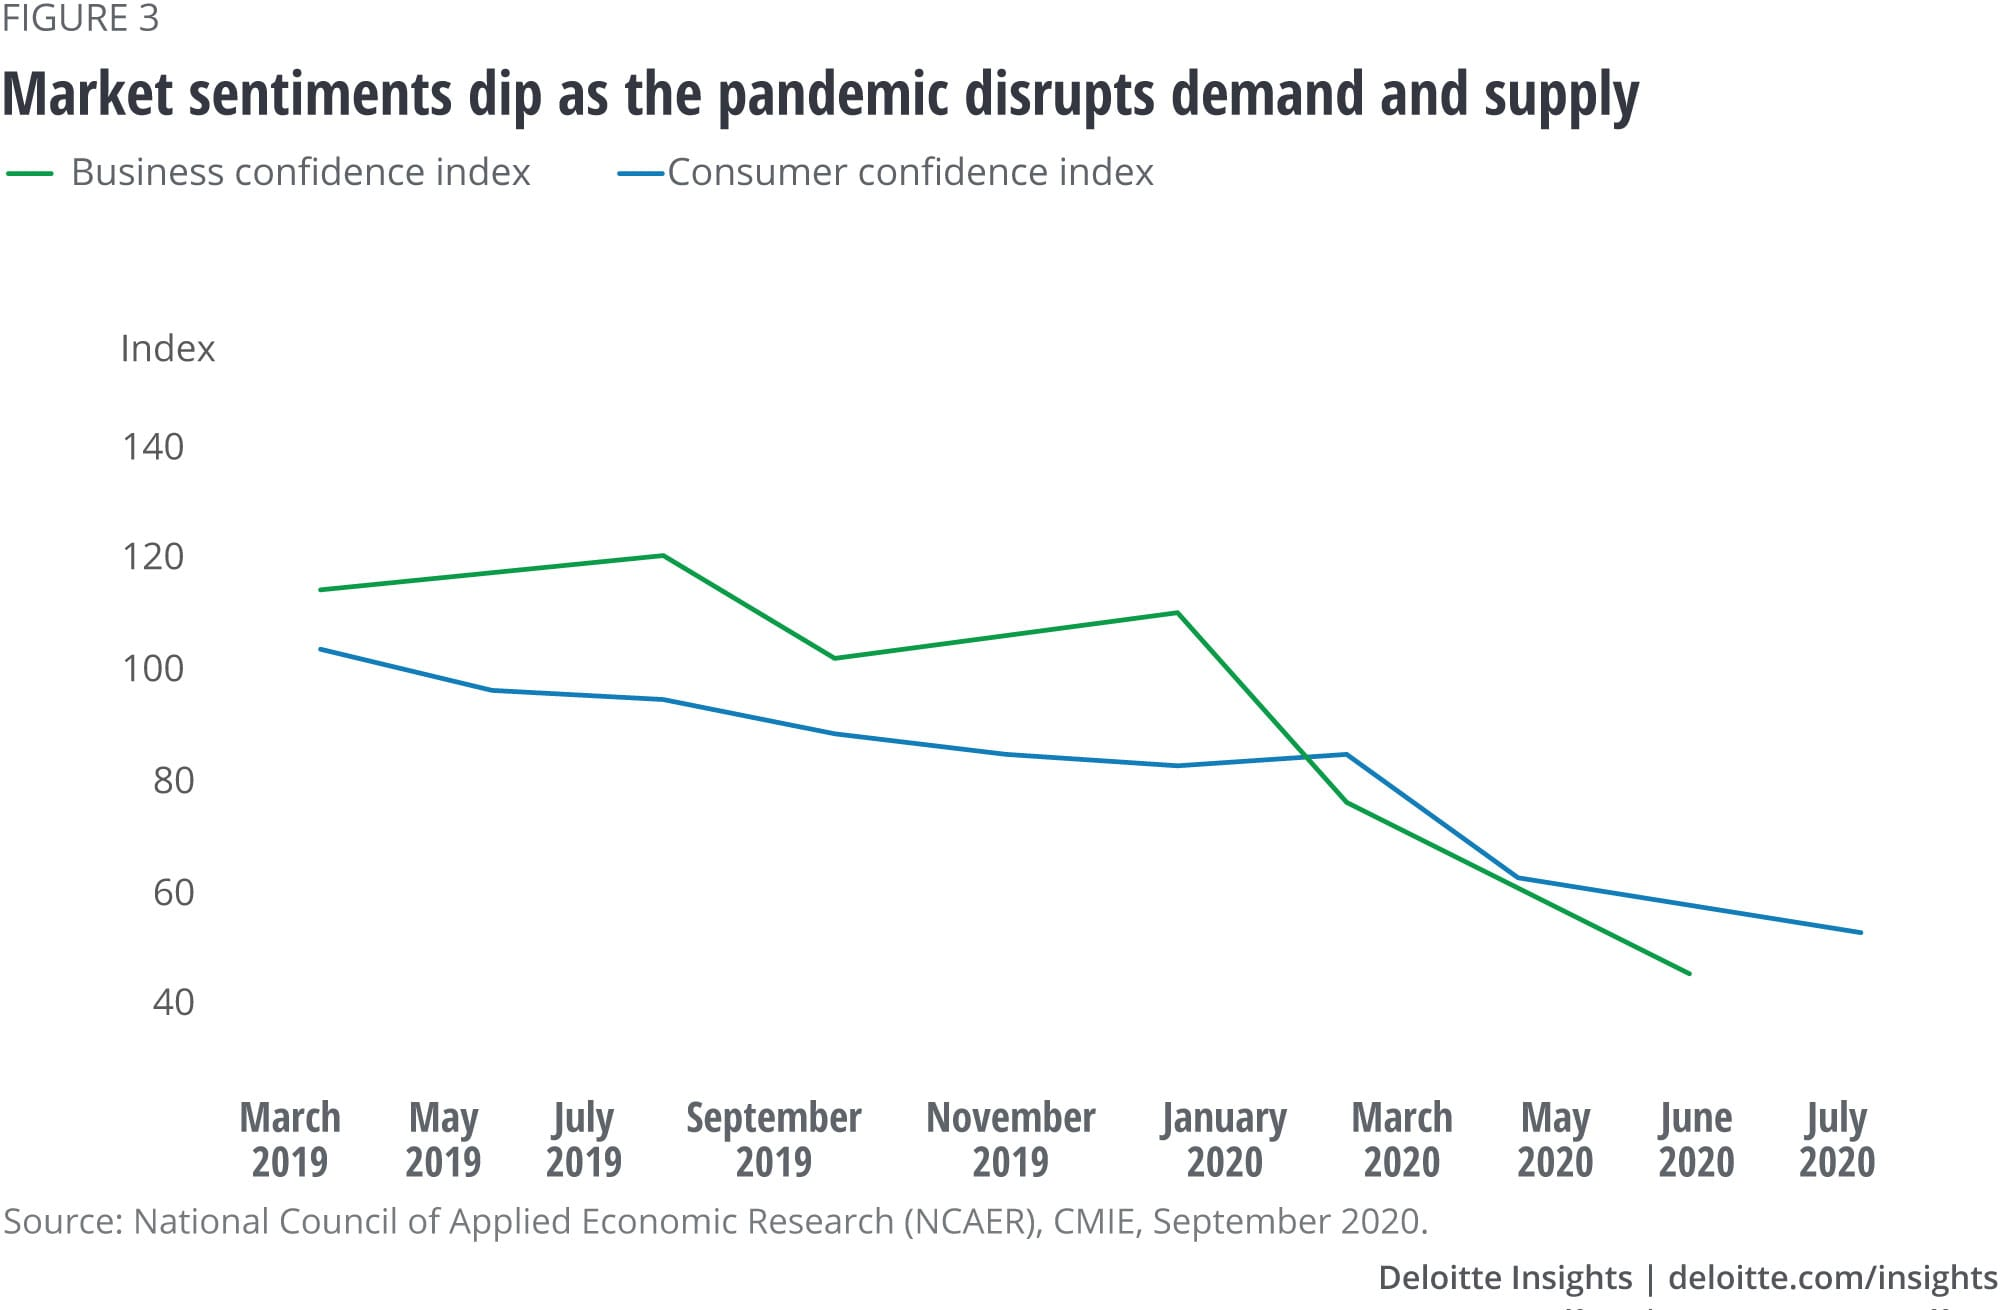 Market sentiments dip as the pandemic disrupts demand and supply